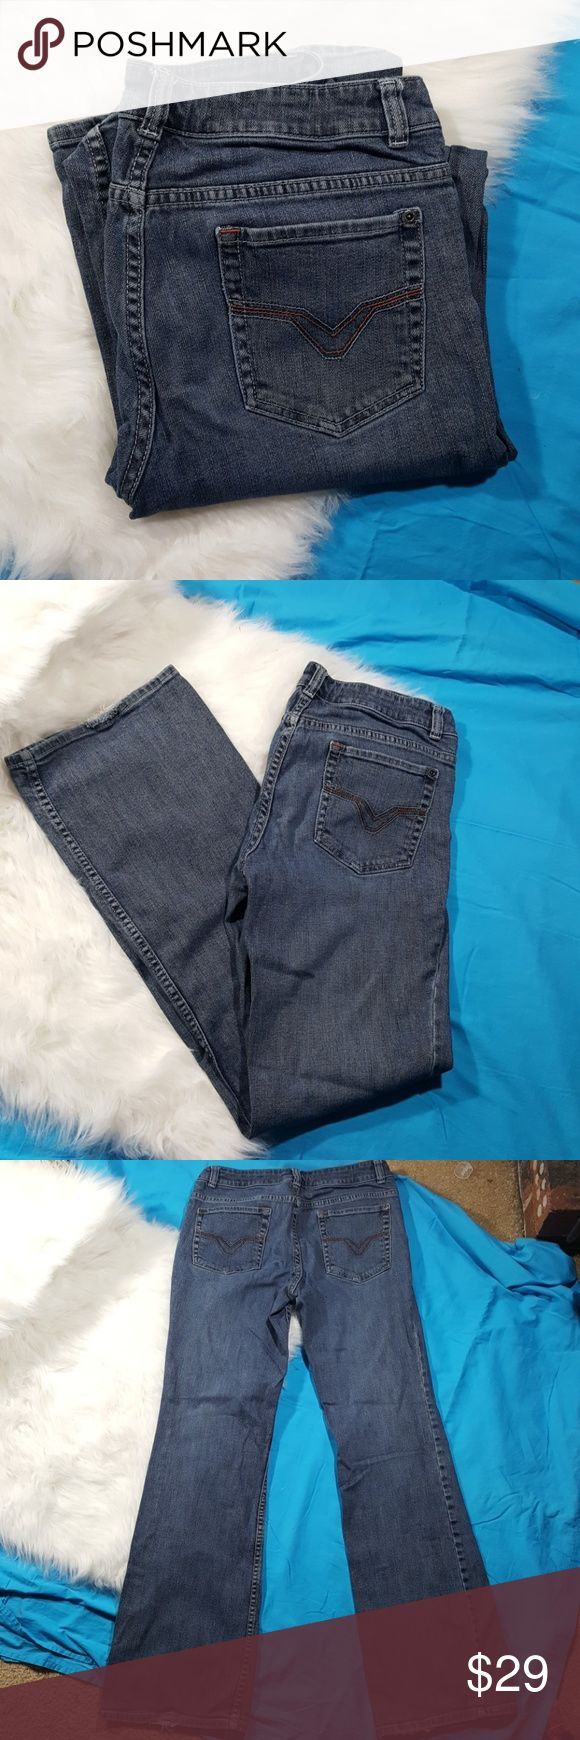 6 long harley davidson jeans Good used condition Harley Davidson jeans with patch on front pocket. Size 6 long. Some fraying on the bottom him. No other rips stains or tears. Harley-Davidson Jeans Boot Cut